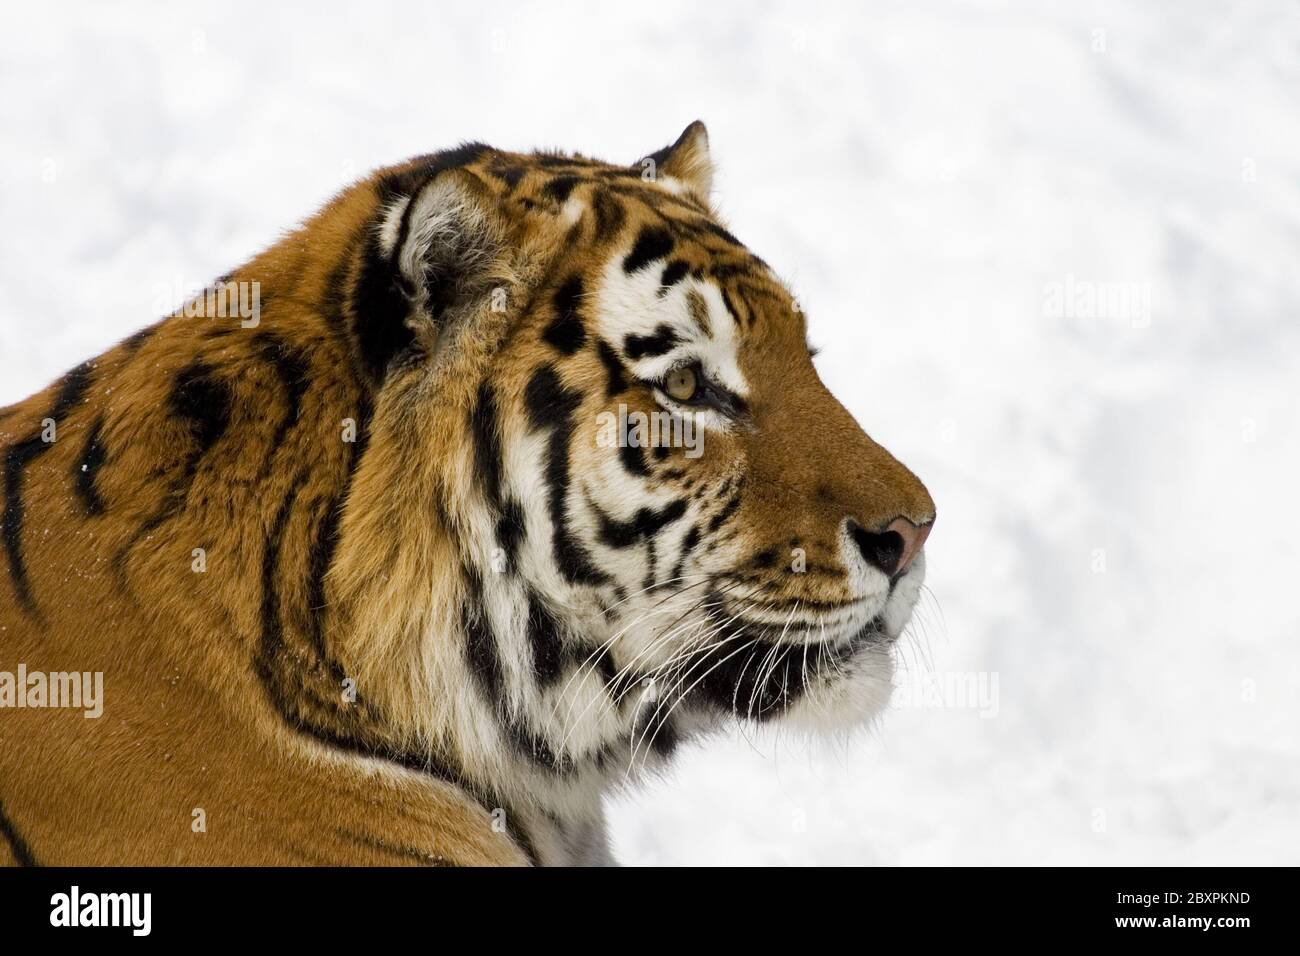 Sibirian Tiger (Panthera tigris altaica) in snow Stock Photo